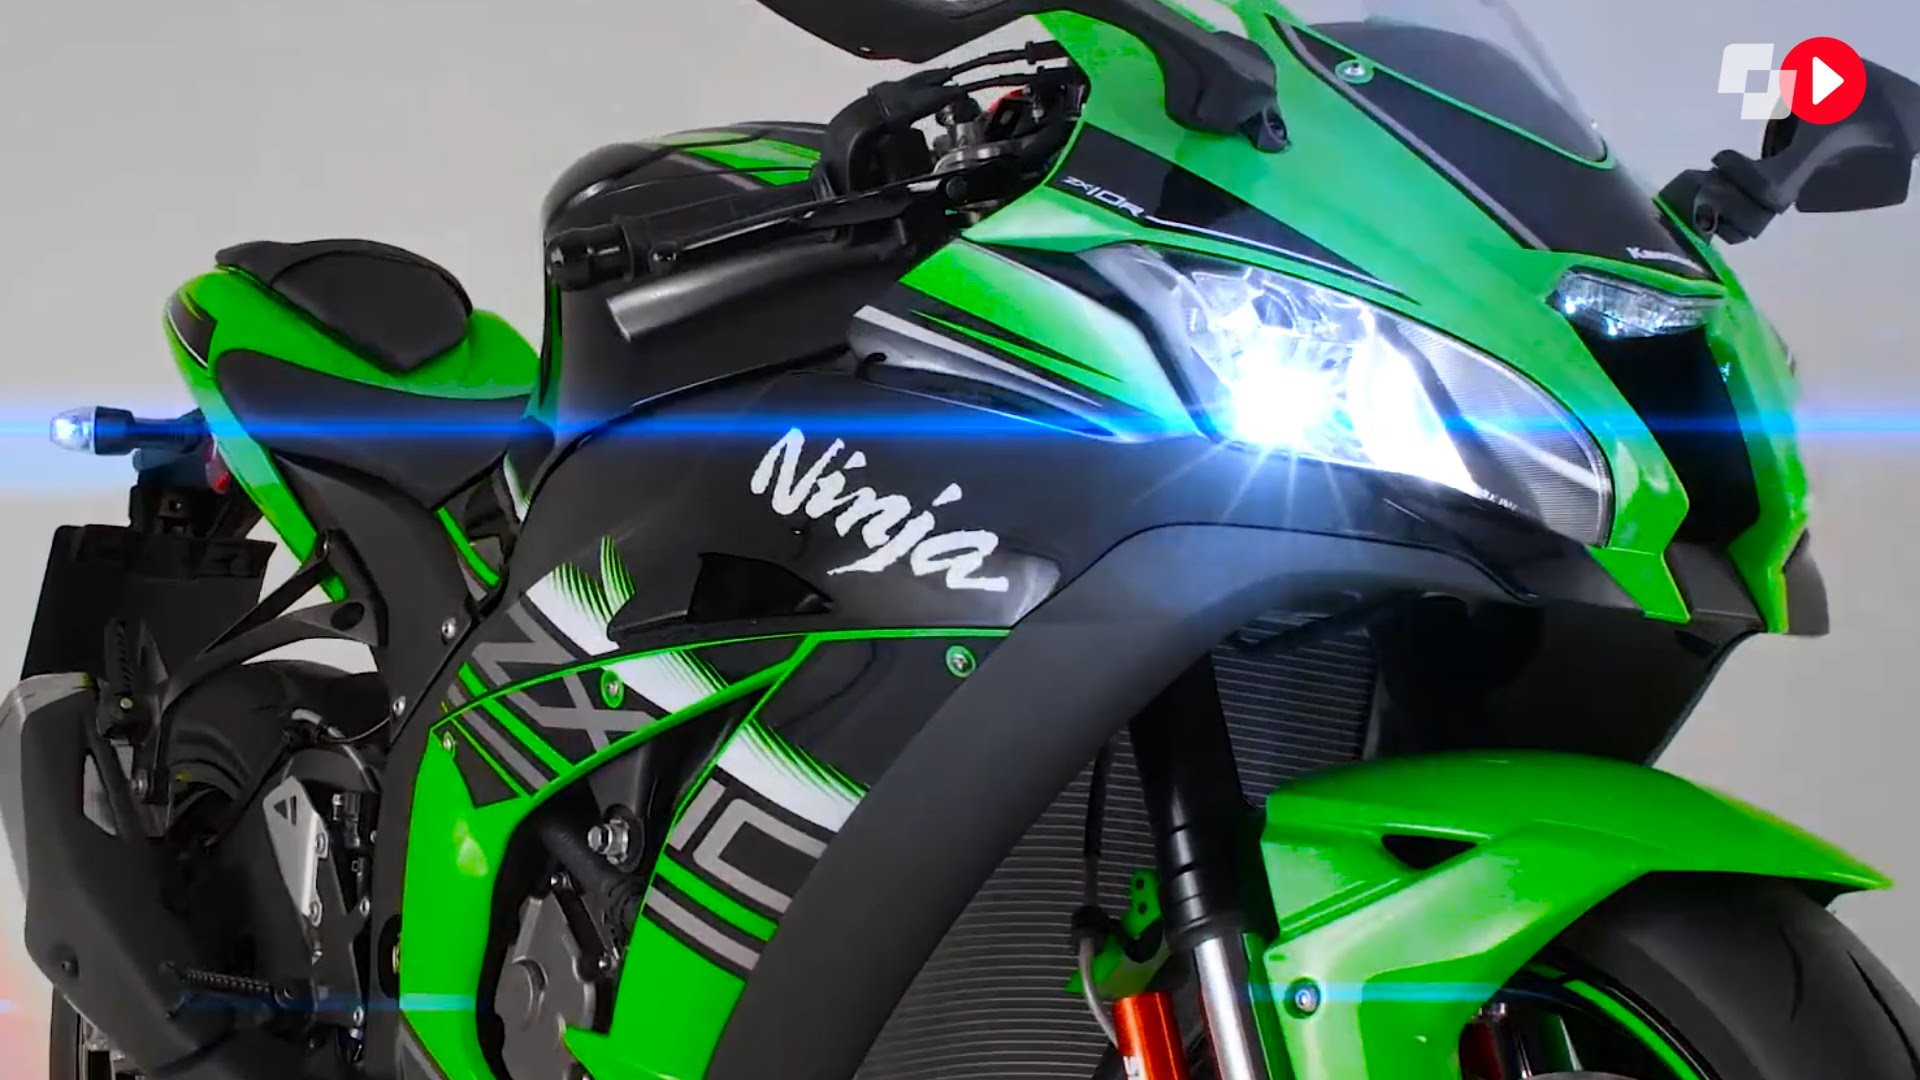 2048x1367 Kawasaki Ninja ZX6R Wallpaper AA 36 Wallpapers Hd High Quality